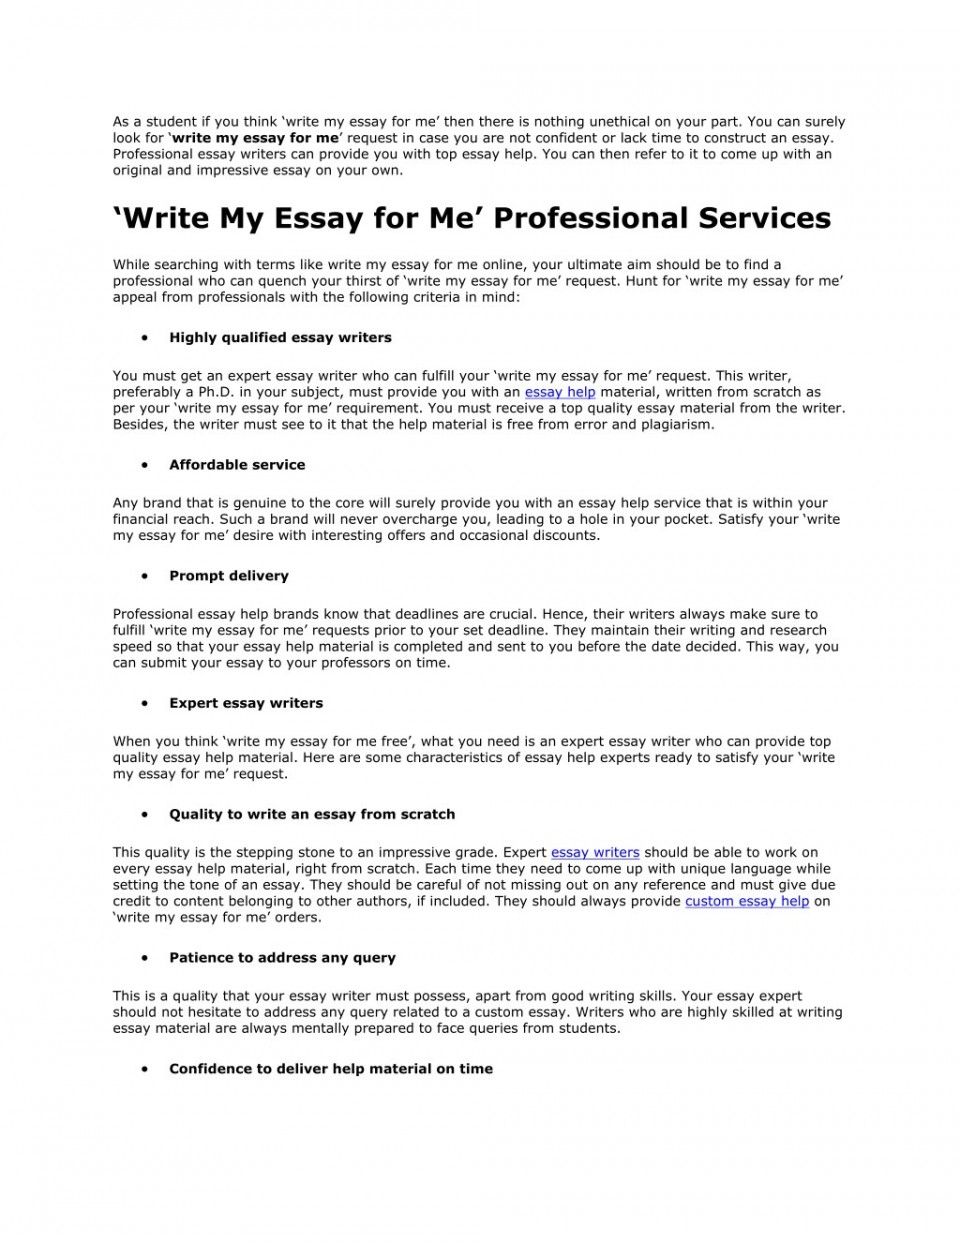 017 Write My Essay For Me Example As Student If You Think Surprising App Free Uk 960